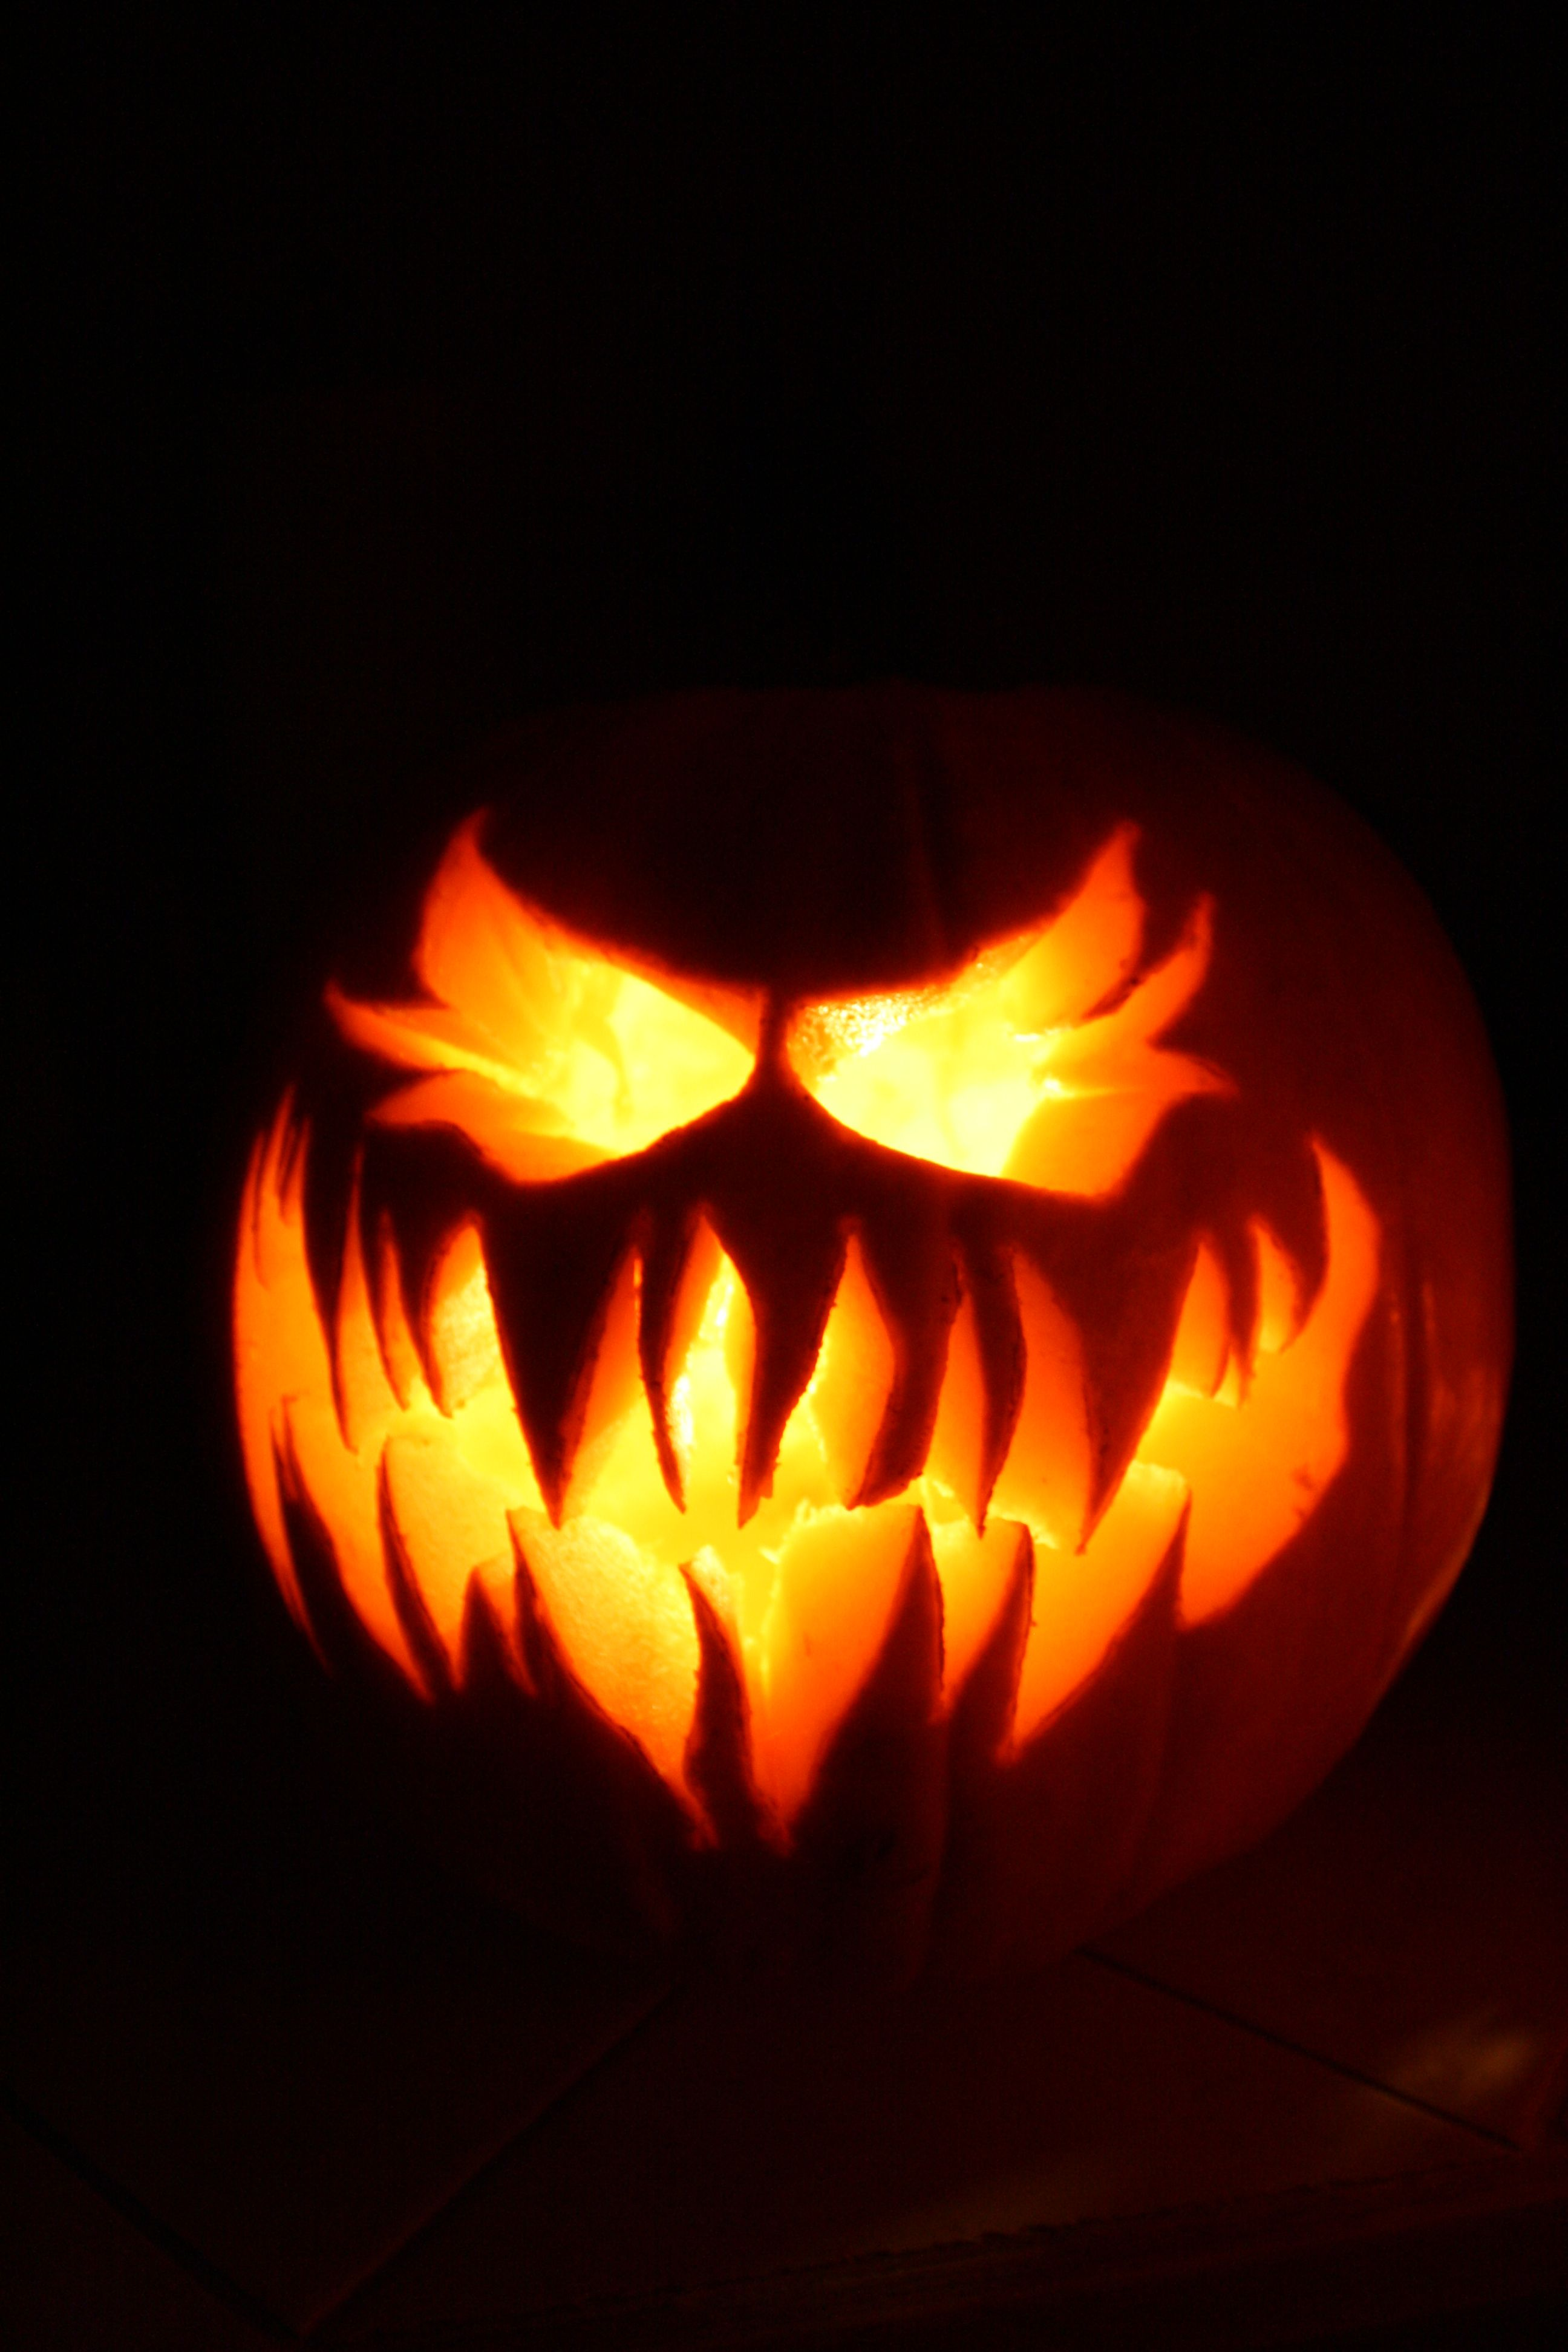 11 crazy jack o lanterns to really give you the creeps halloween rh pinterest com scary traditional pumpkin really scary pumpkin stencil